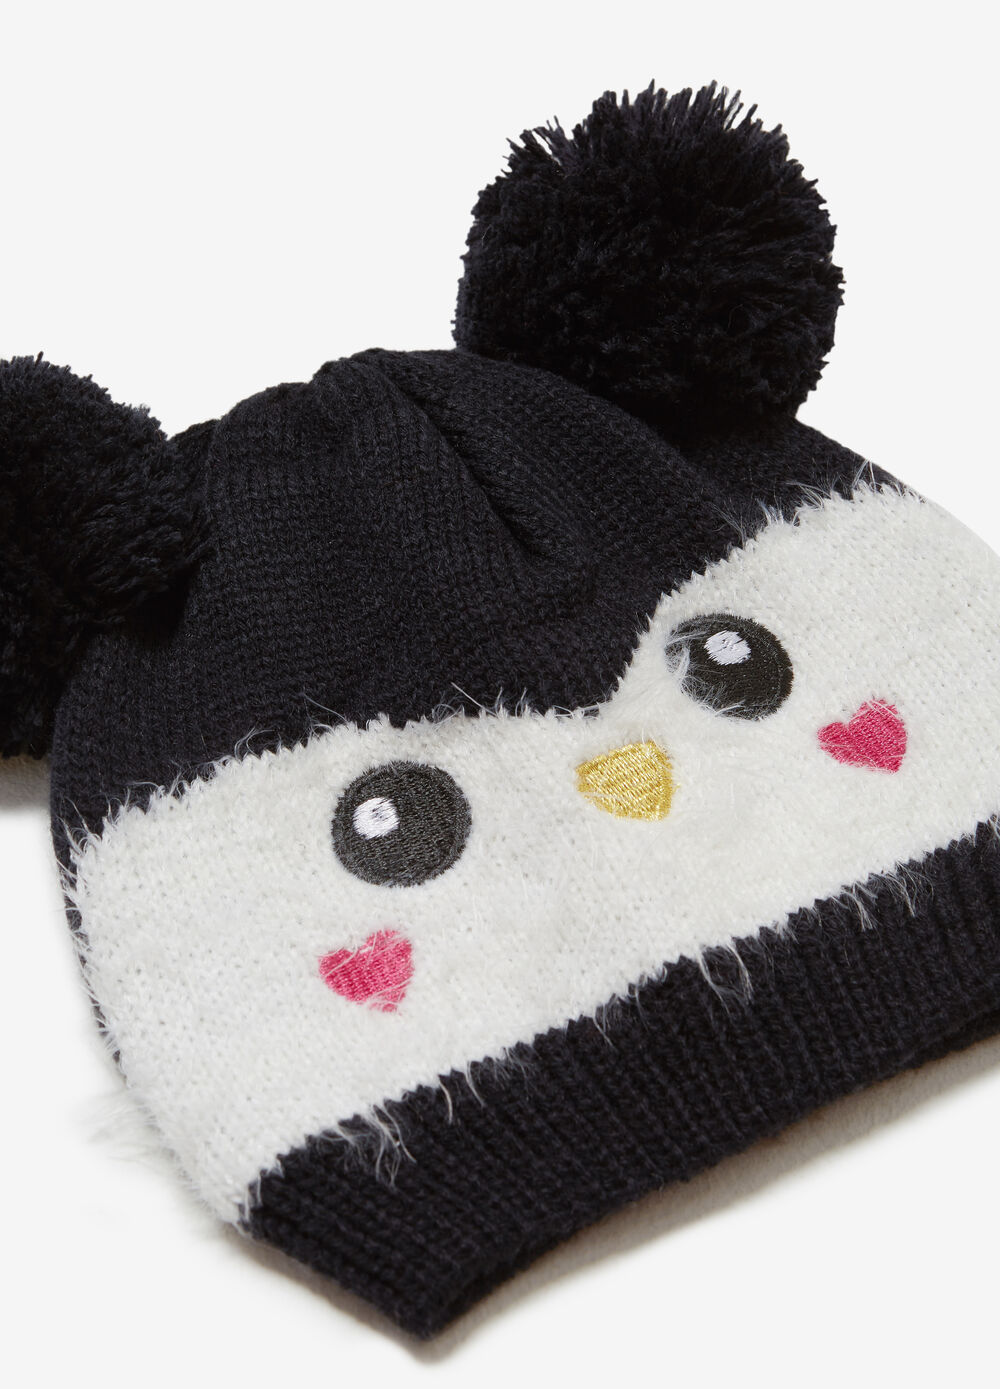 Embroidered beanie cap with pompoms